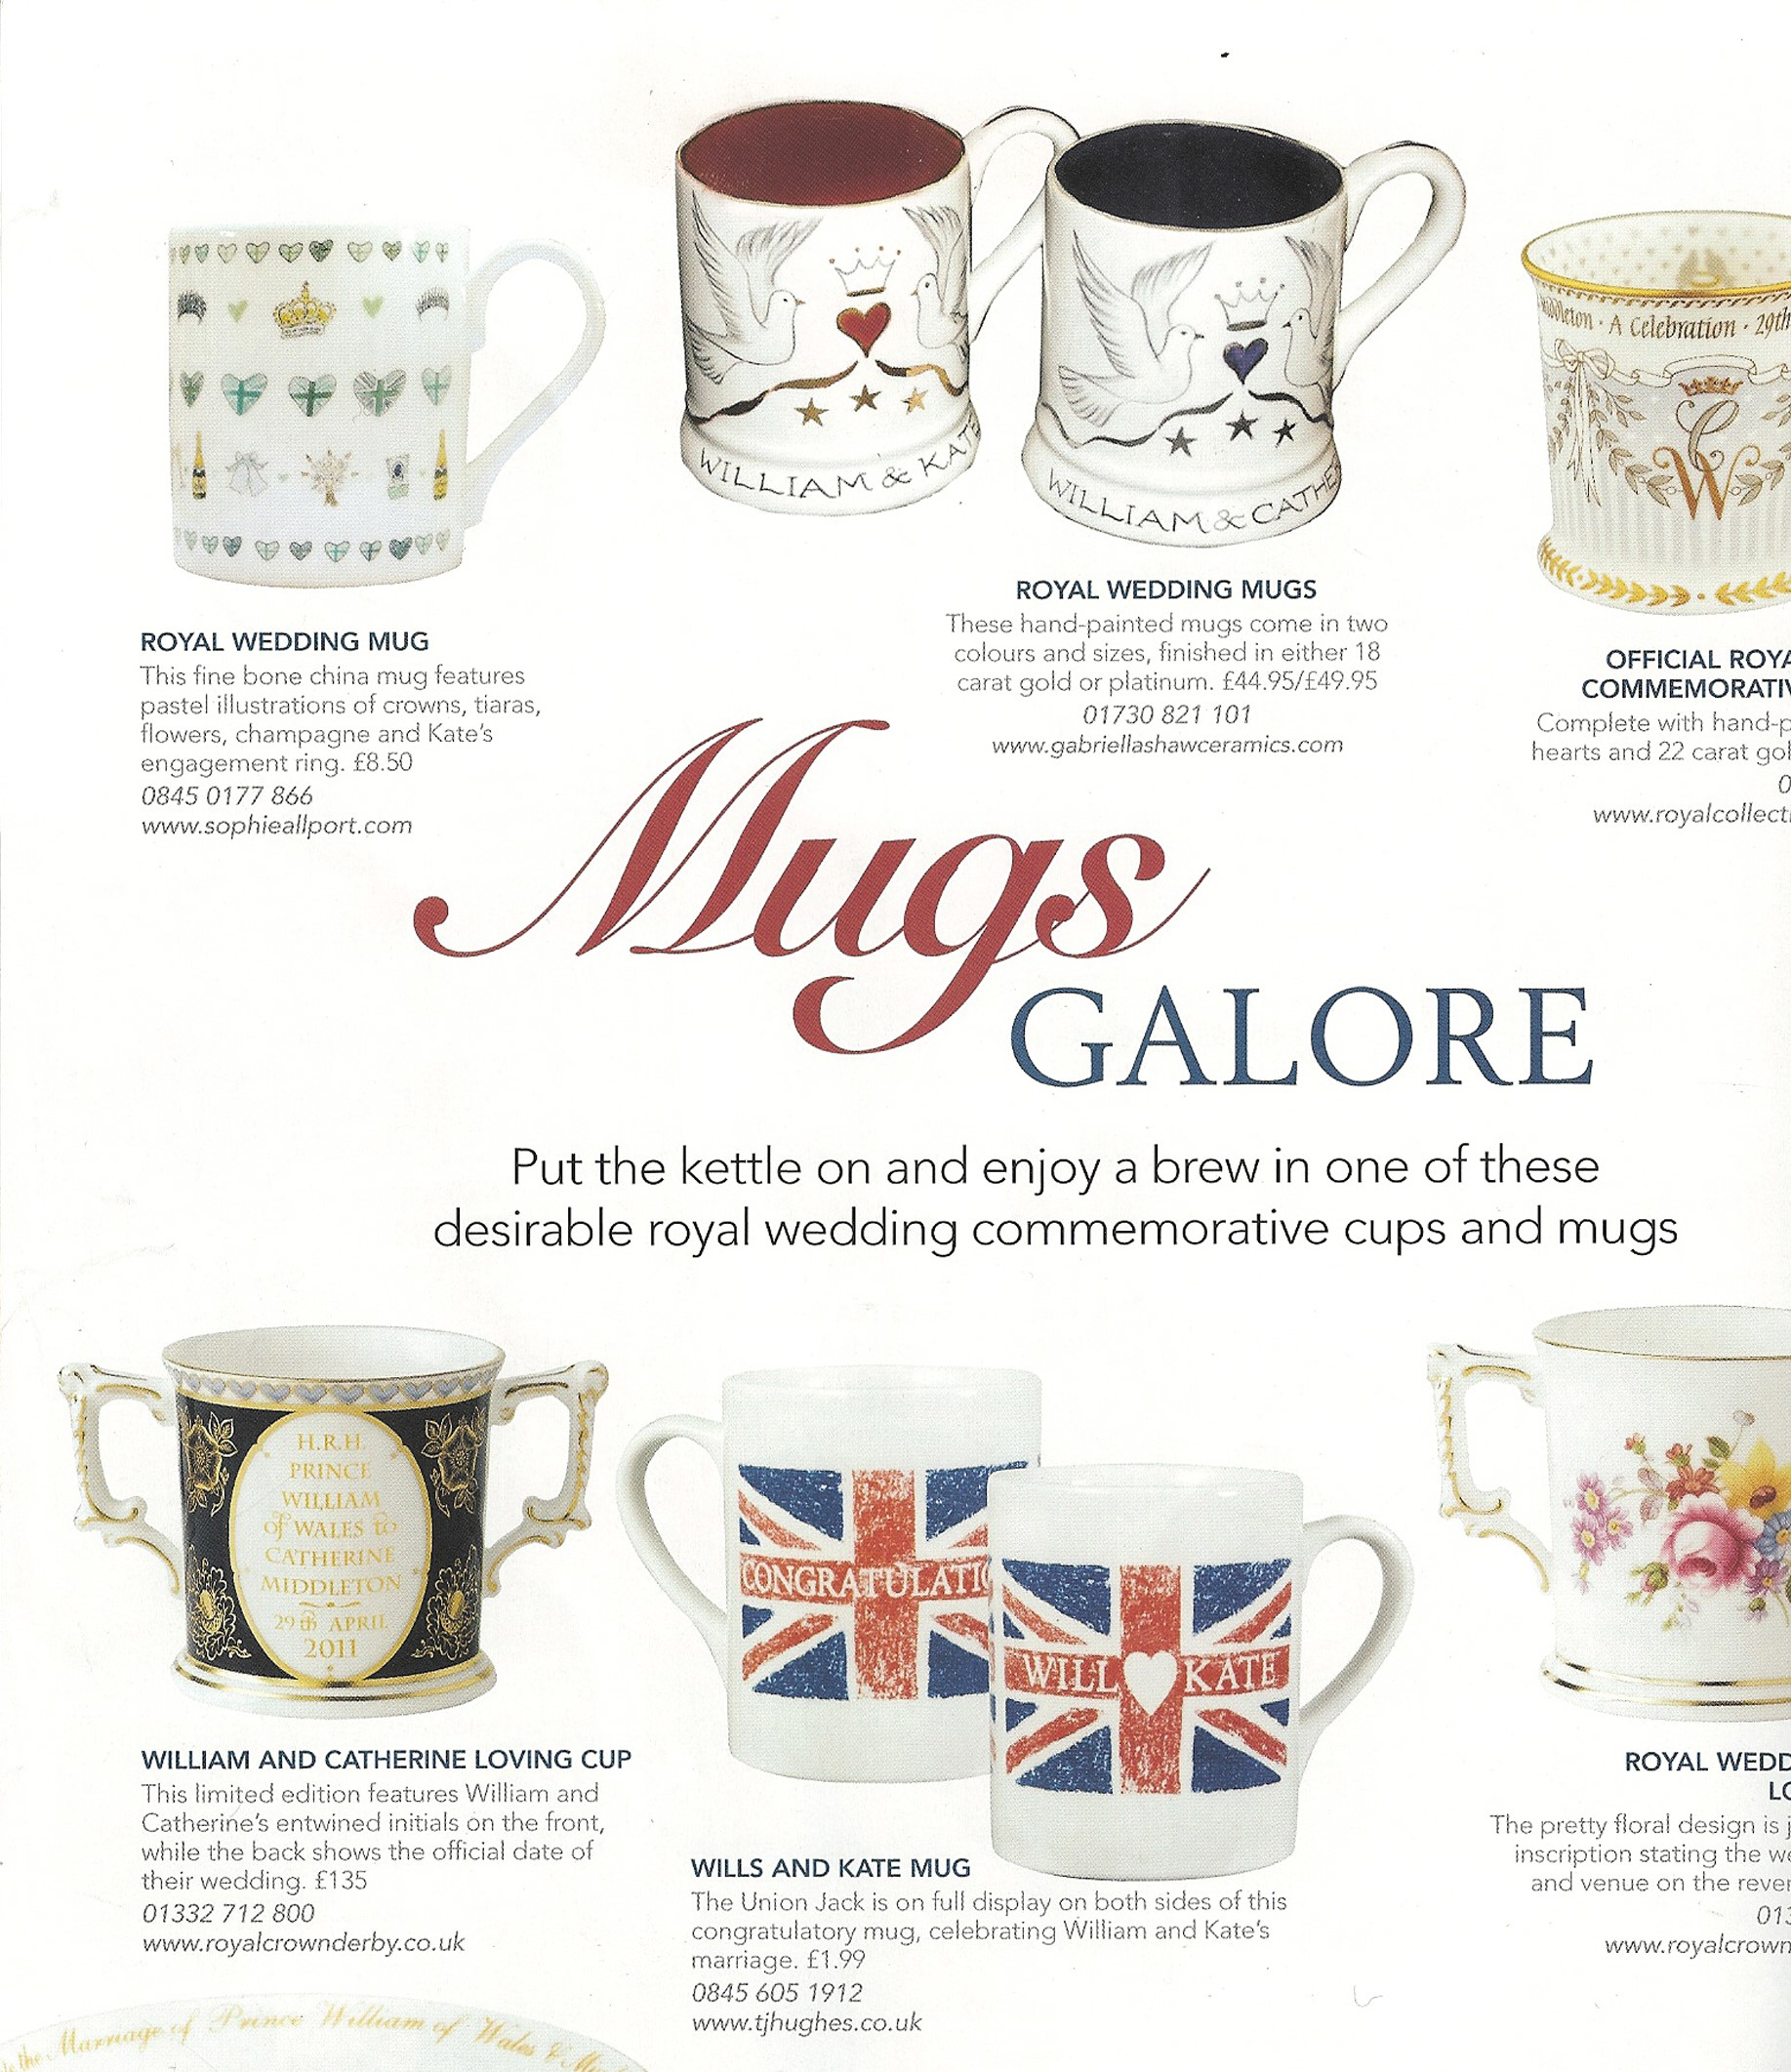 The Royal Wedding Magazine